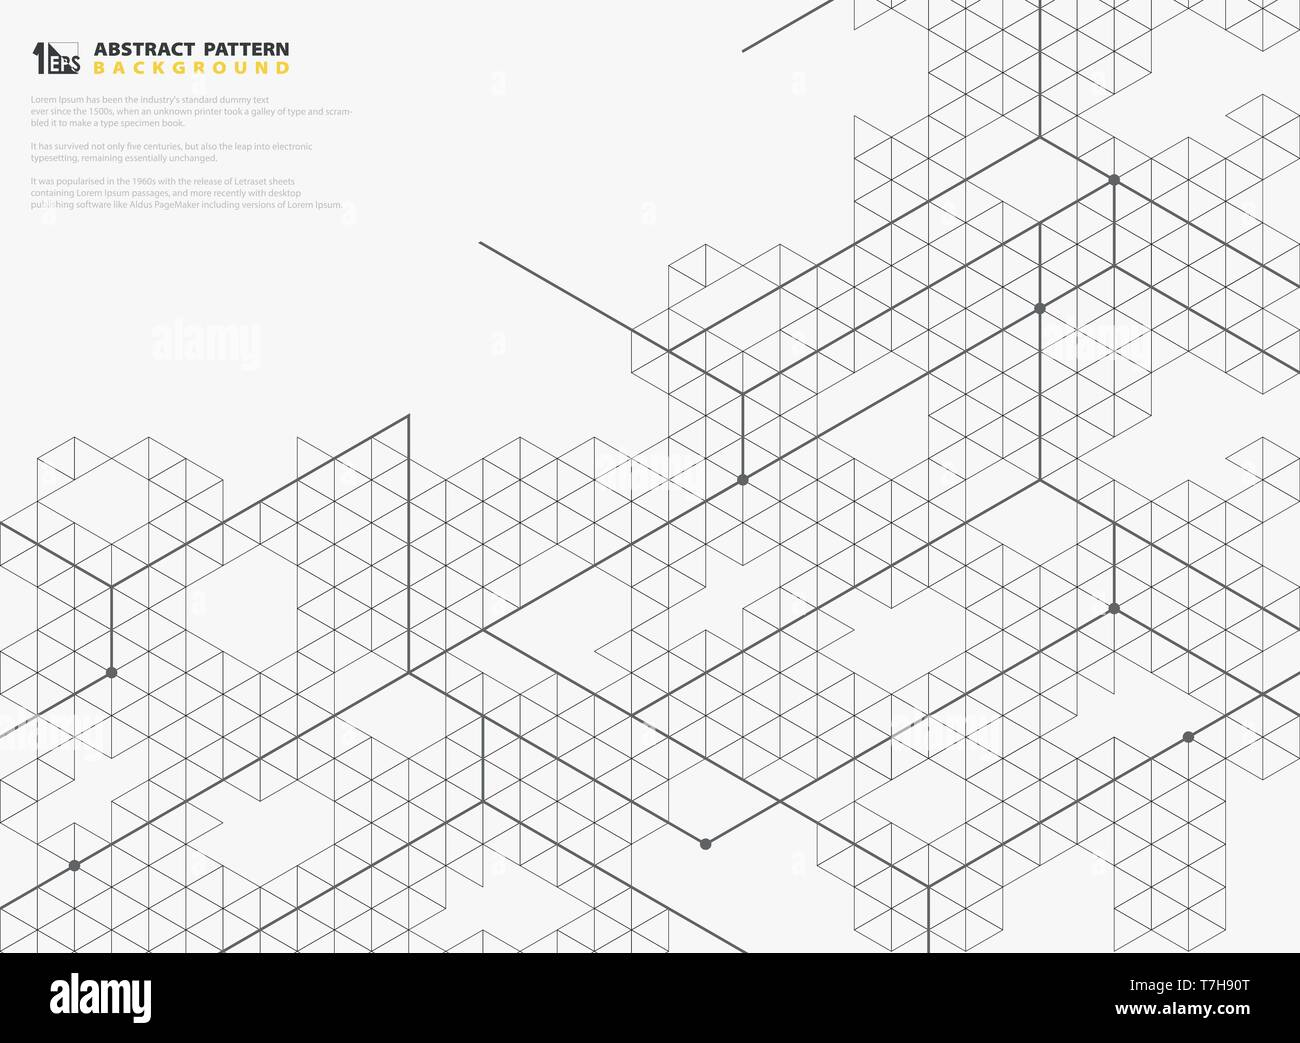 Abstract modern square line structures pattern design of geometric background. You can use for geometrical pattern cover, design artwork, ad, poster,  - Stock Image